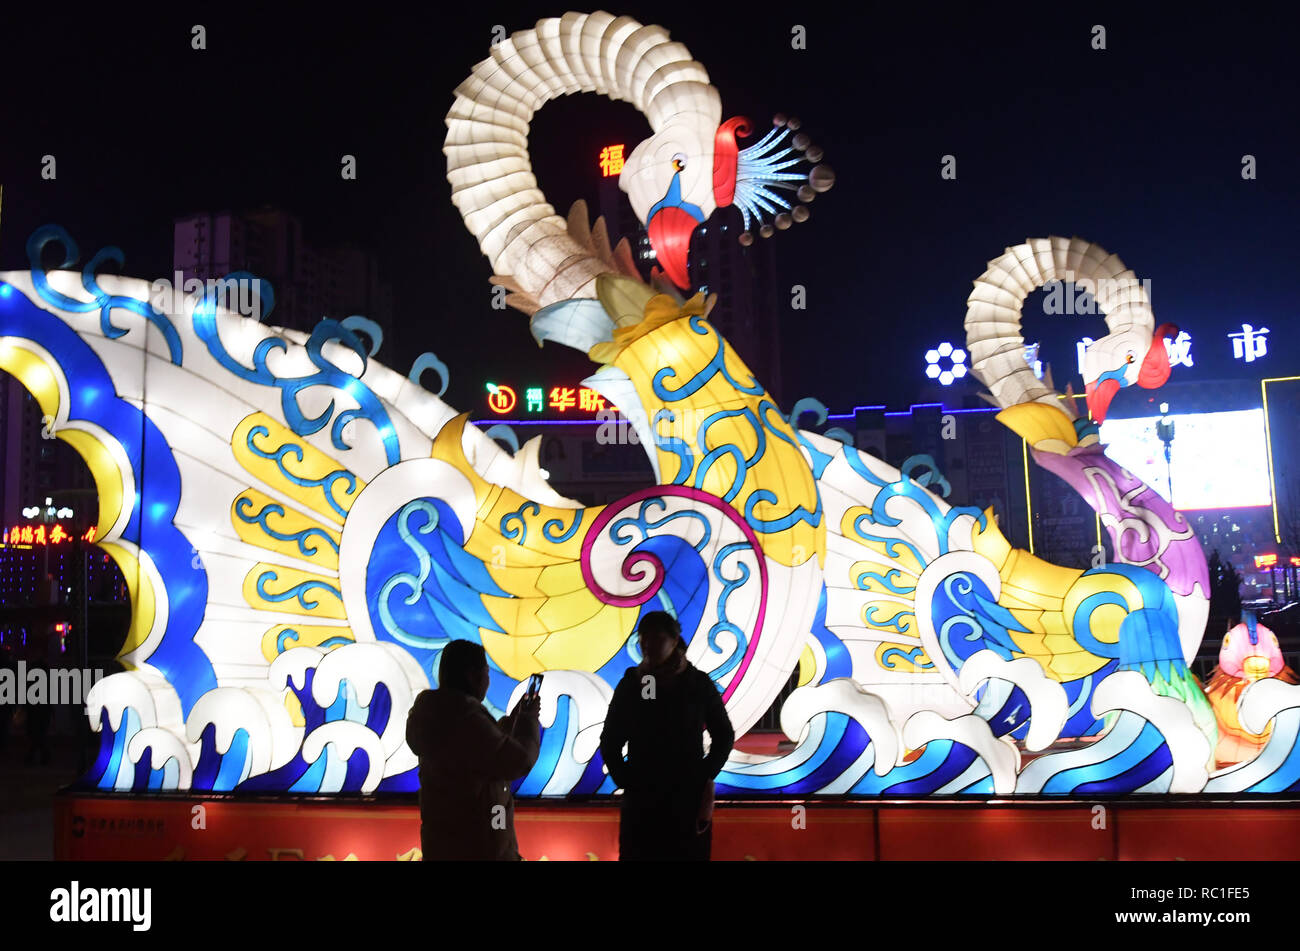 Linxia, China's Gansu Province. 12th Jan, 2019. Tourists view colored lanterns during a lantern festival for the upcoming Spring Festival, which starts from the first day of the first month of the Chinese lunar calendar, or Feb. 5 this year, at a waterfront park in Liujiaxia Township in Yongjing County, northwest China's Gansu Province, Jan. 12, 2019. Credit: Shi Youdong/Xinhua/Alamy Live News - Stock Image